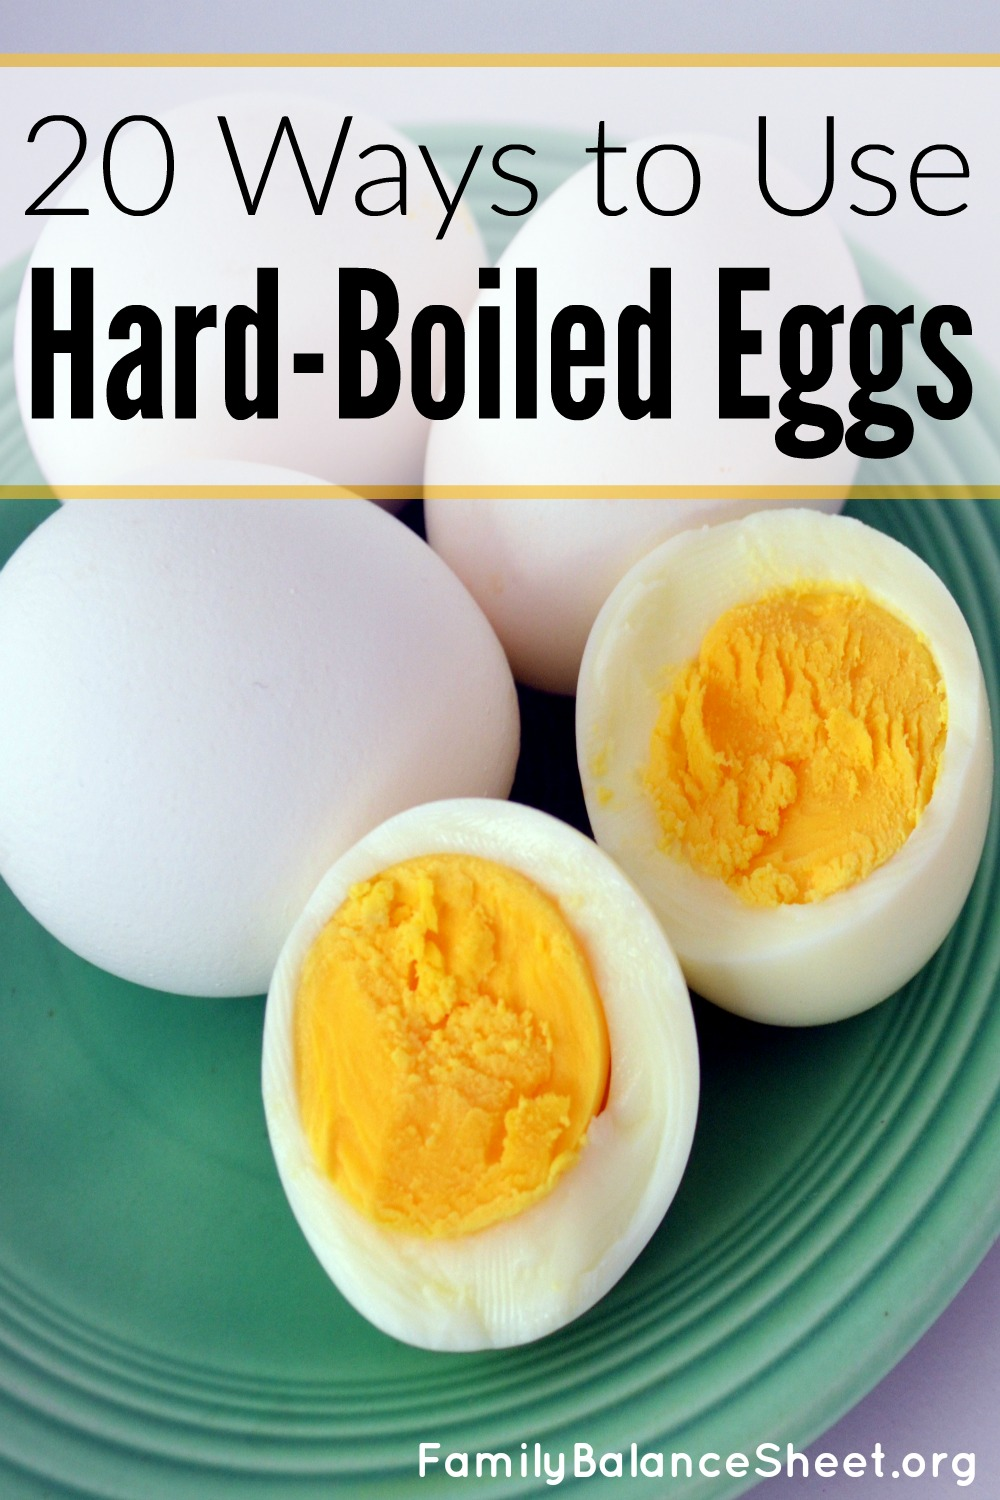 20 ways to use hard-boiled eggs